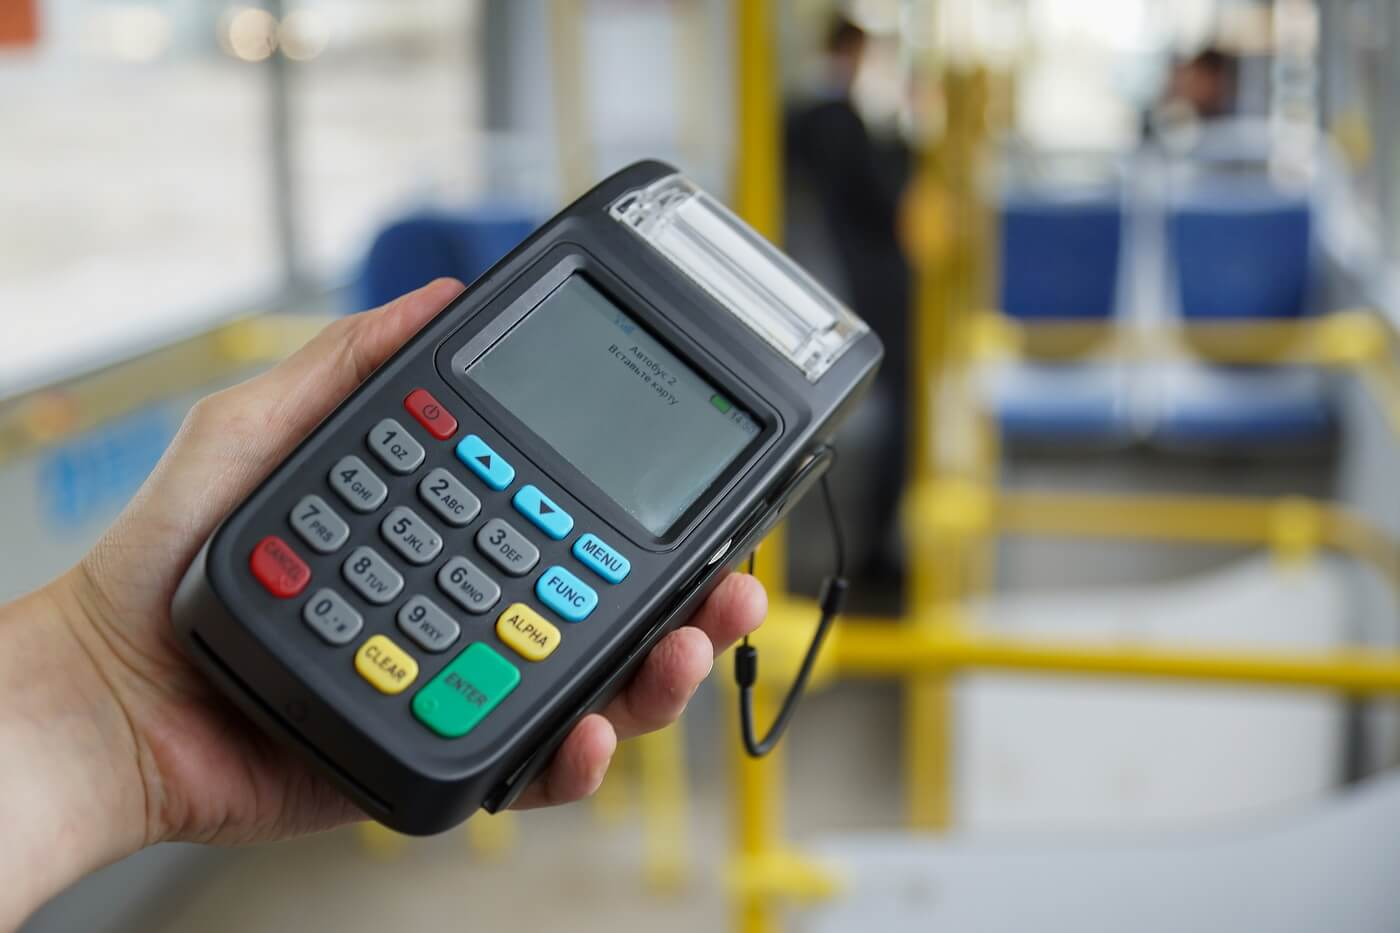 How to Update firmware on NewPOS 8210